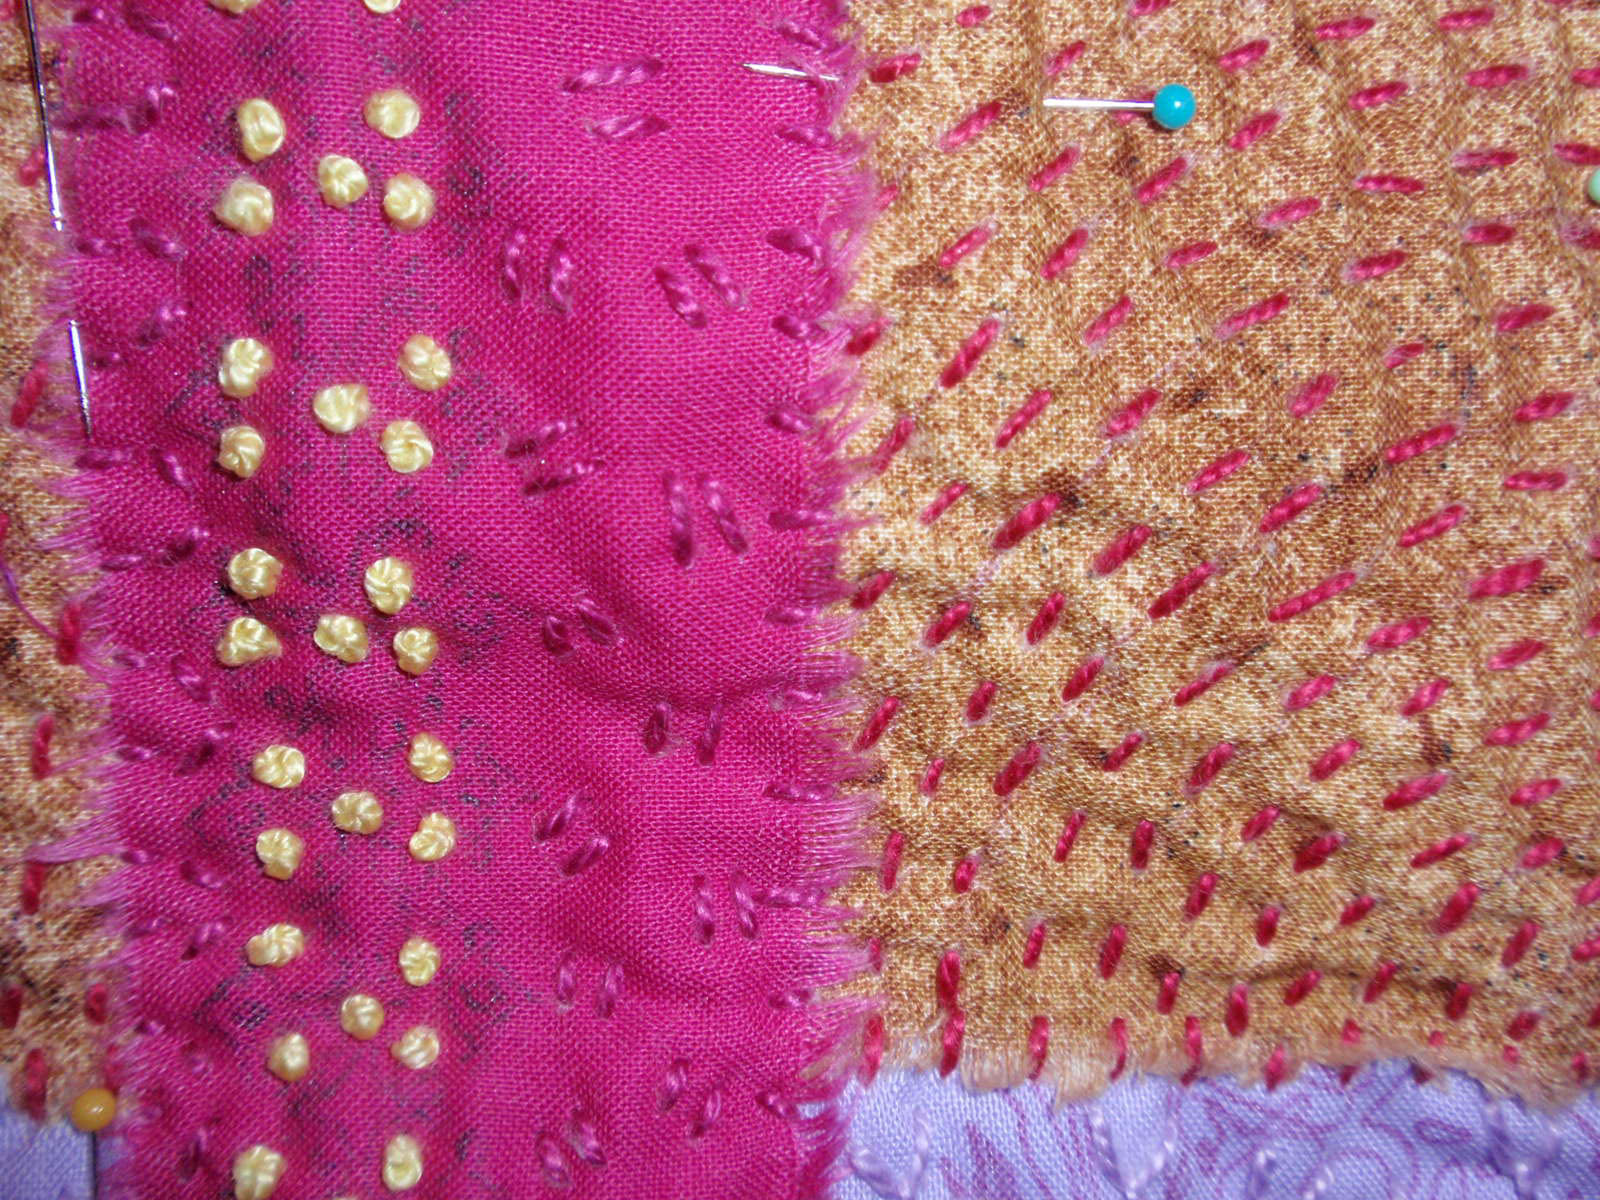 embroidery embellishment 4